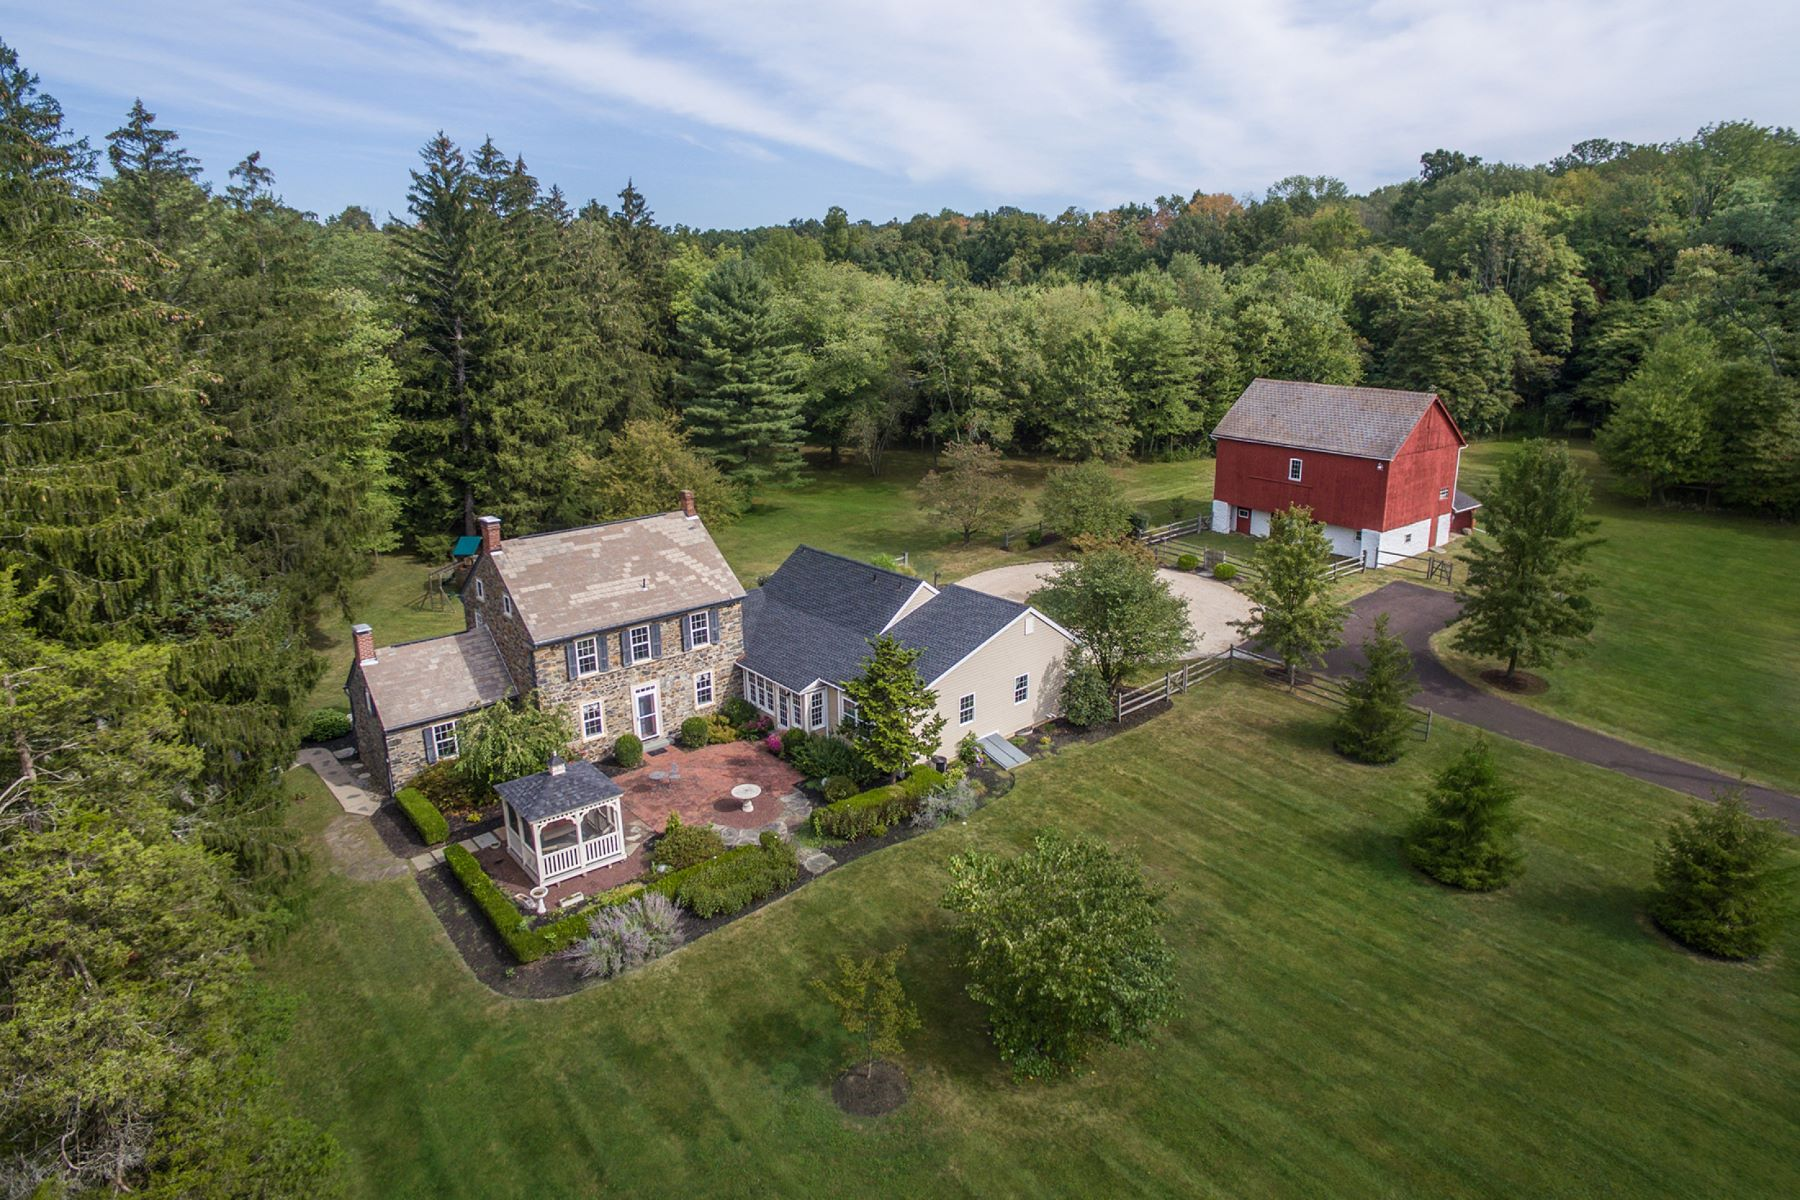 Single Family Home for Sale at Hidden Glade Farm 1109 APPLE RD Quakertown, Pennsylvania 18951 United States